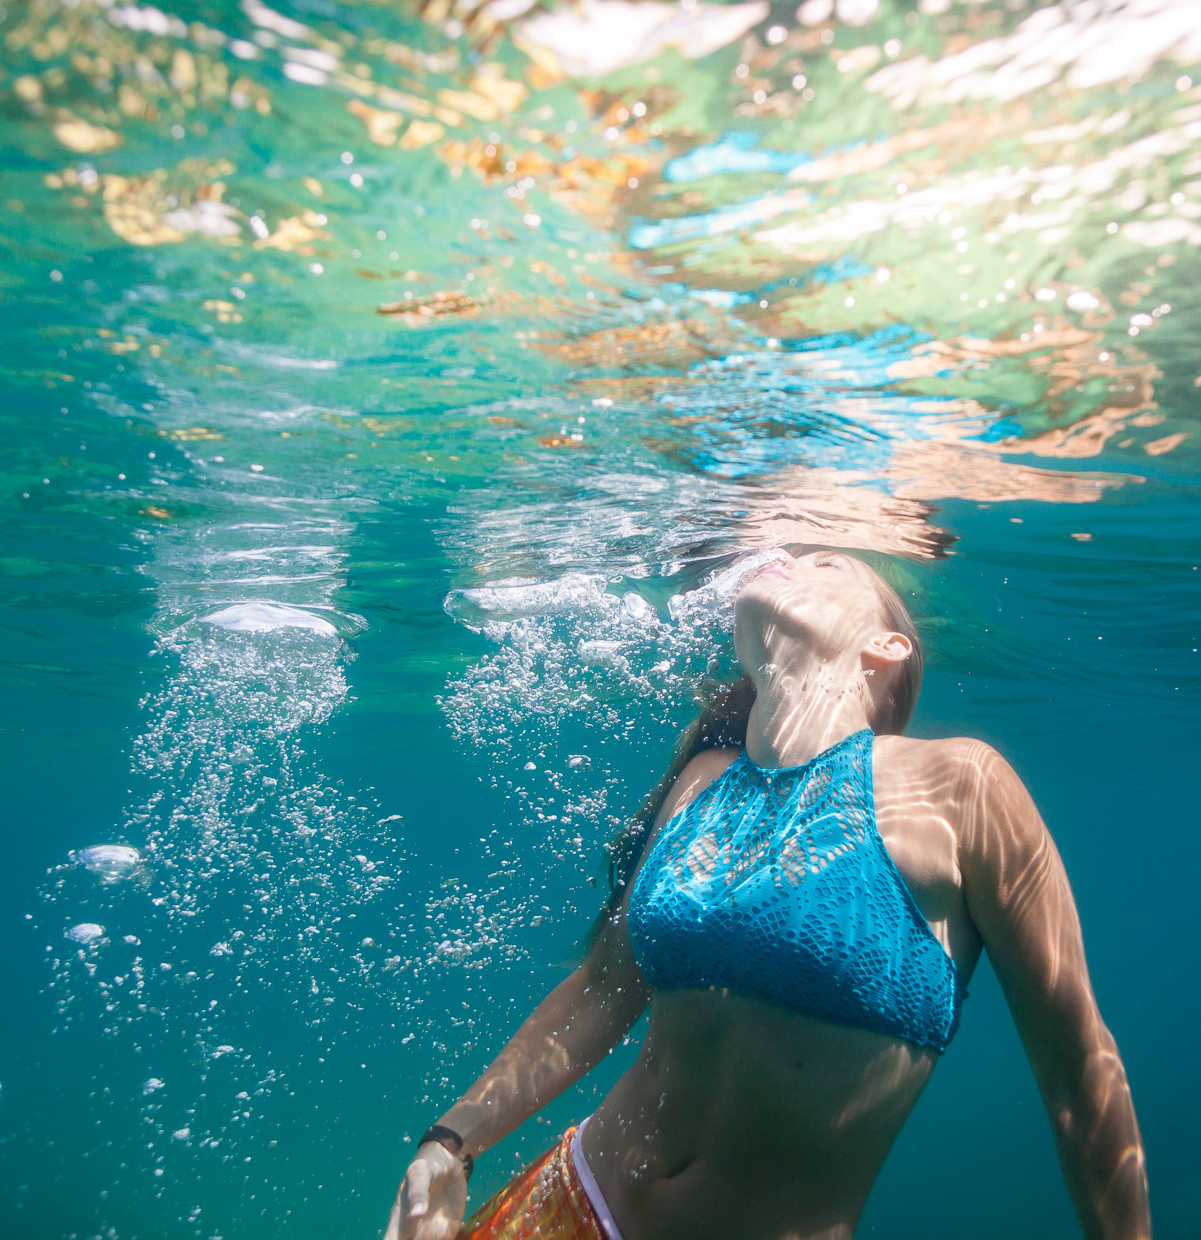 Women swims for the surface of water